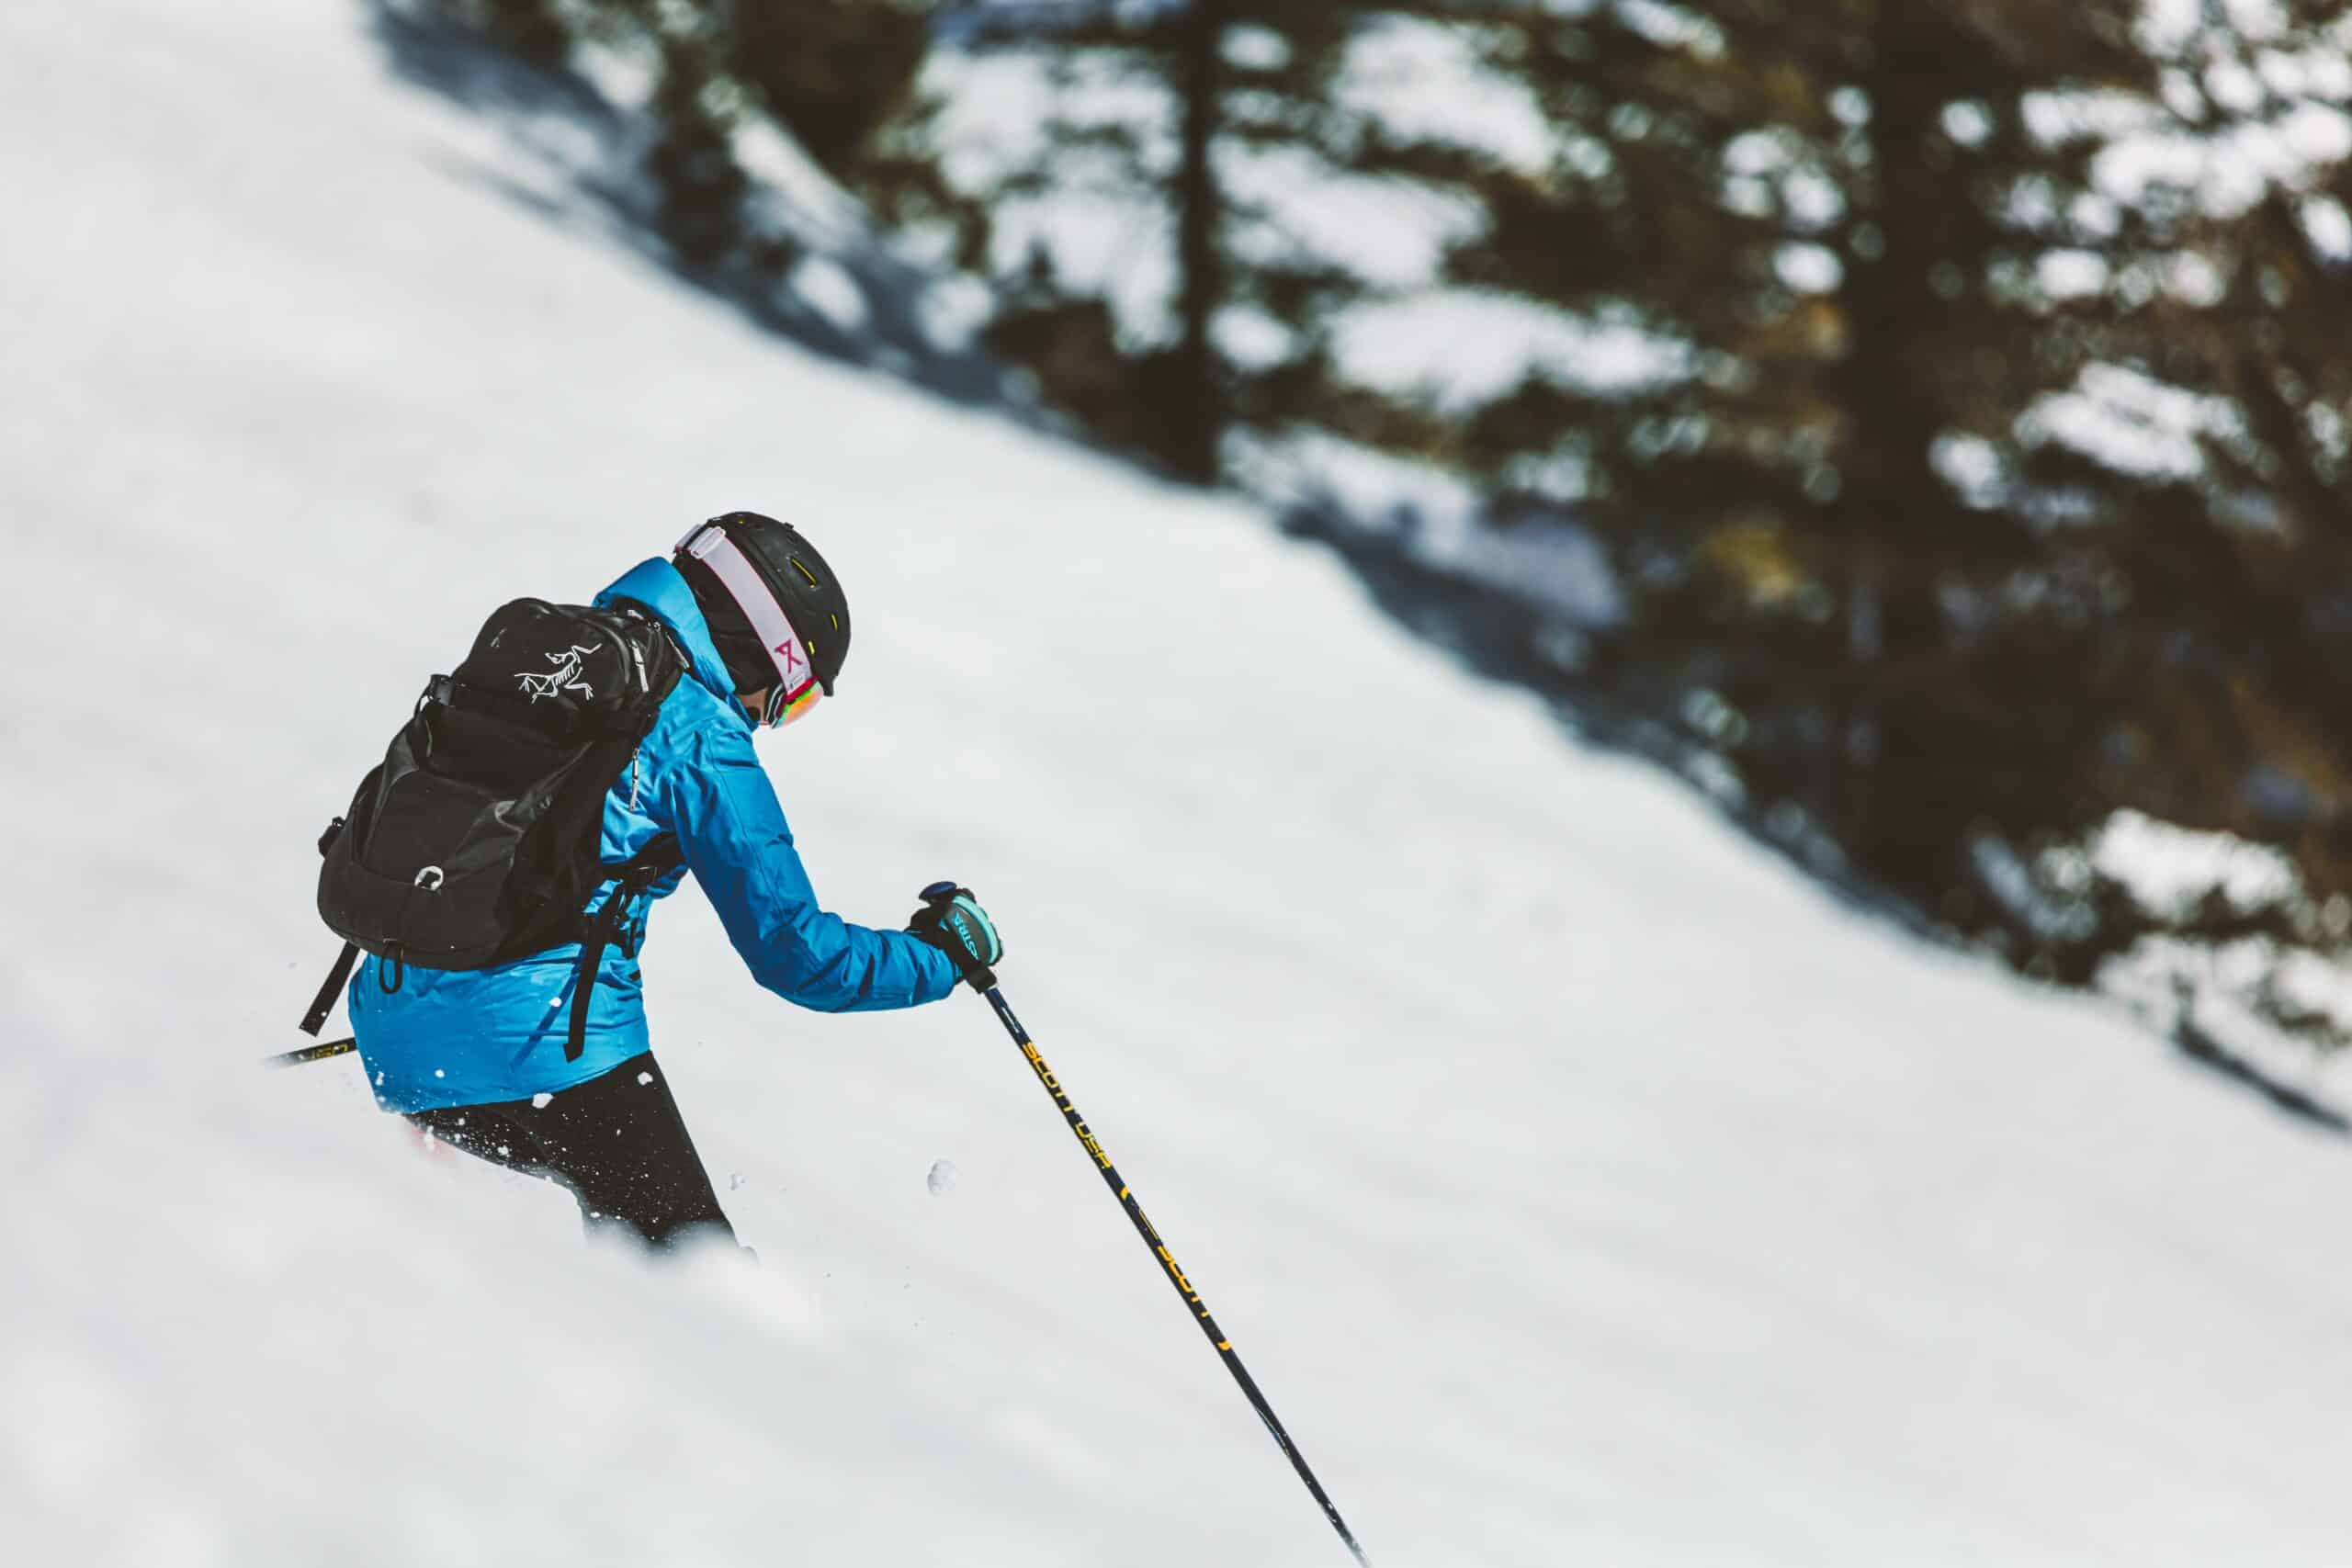 Skier with best glove insulation for skiing